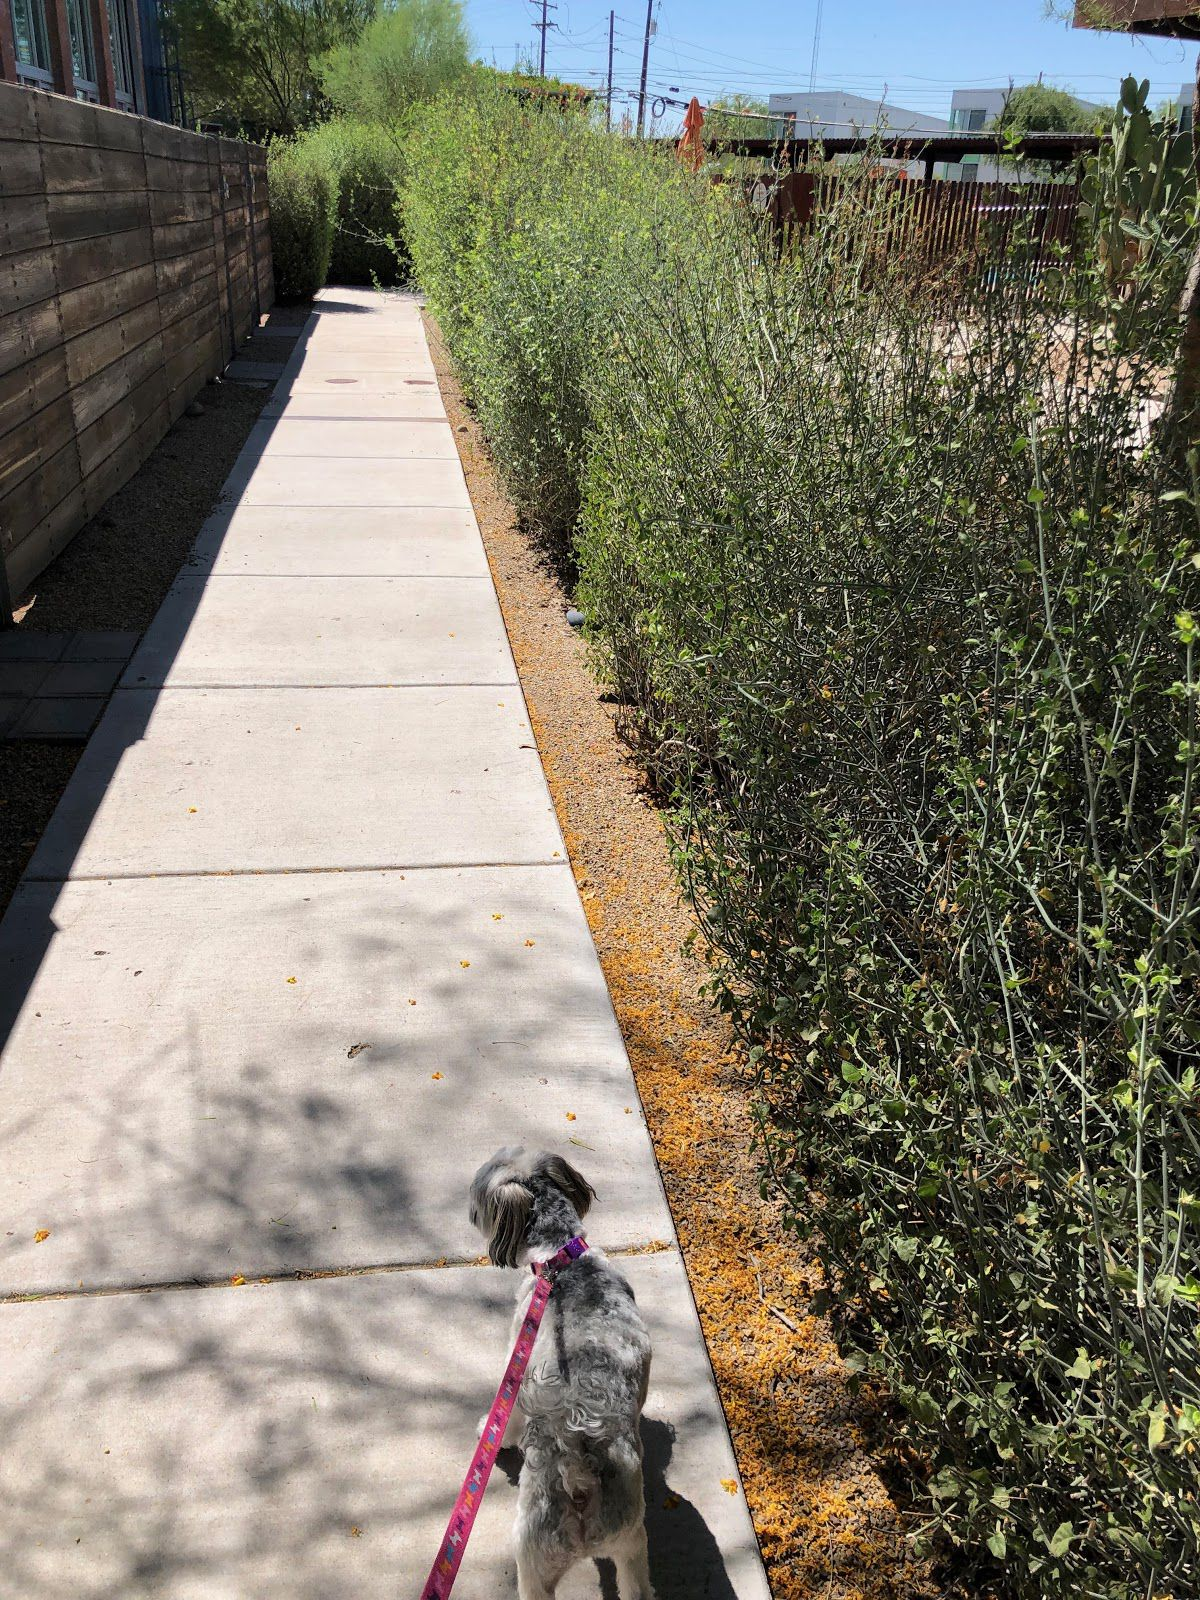 A dog on a pink lease walks down a path filled with desert landscaping.